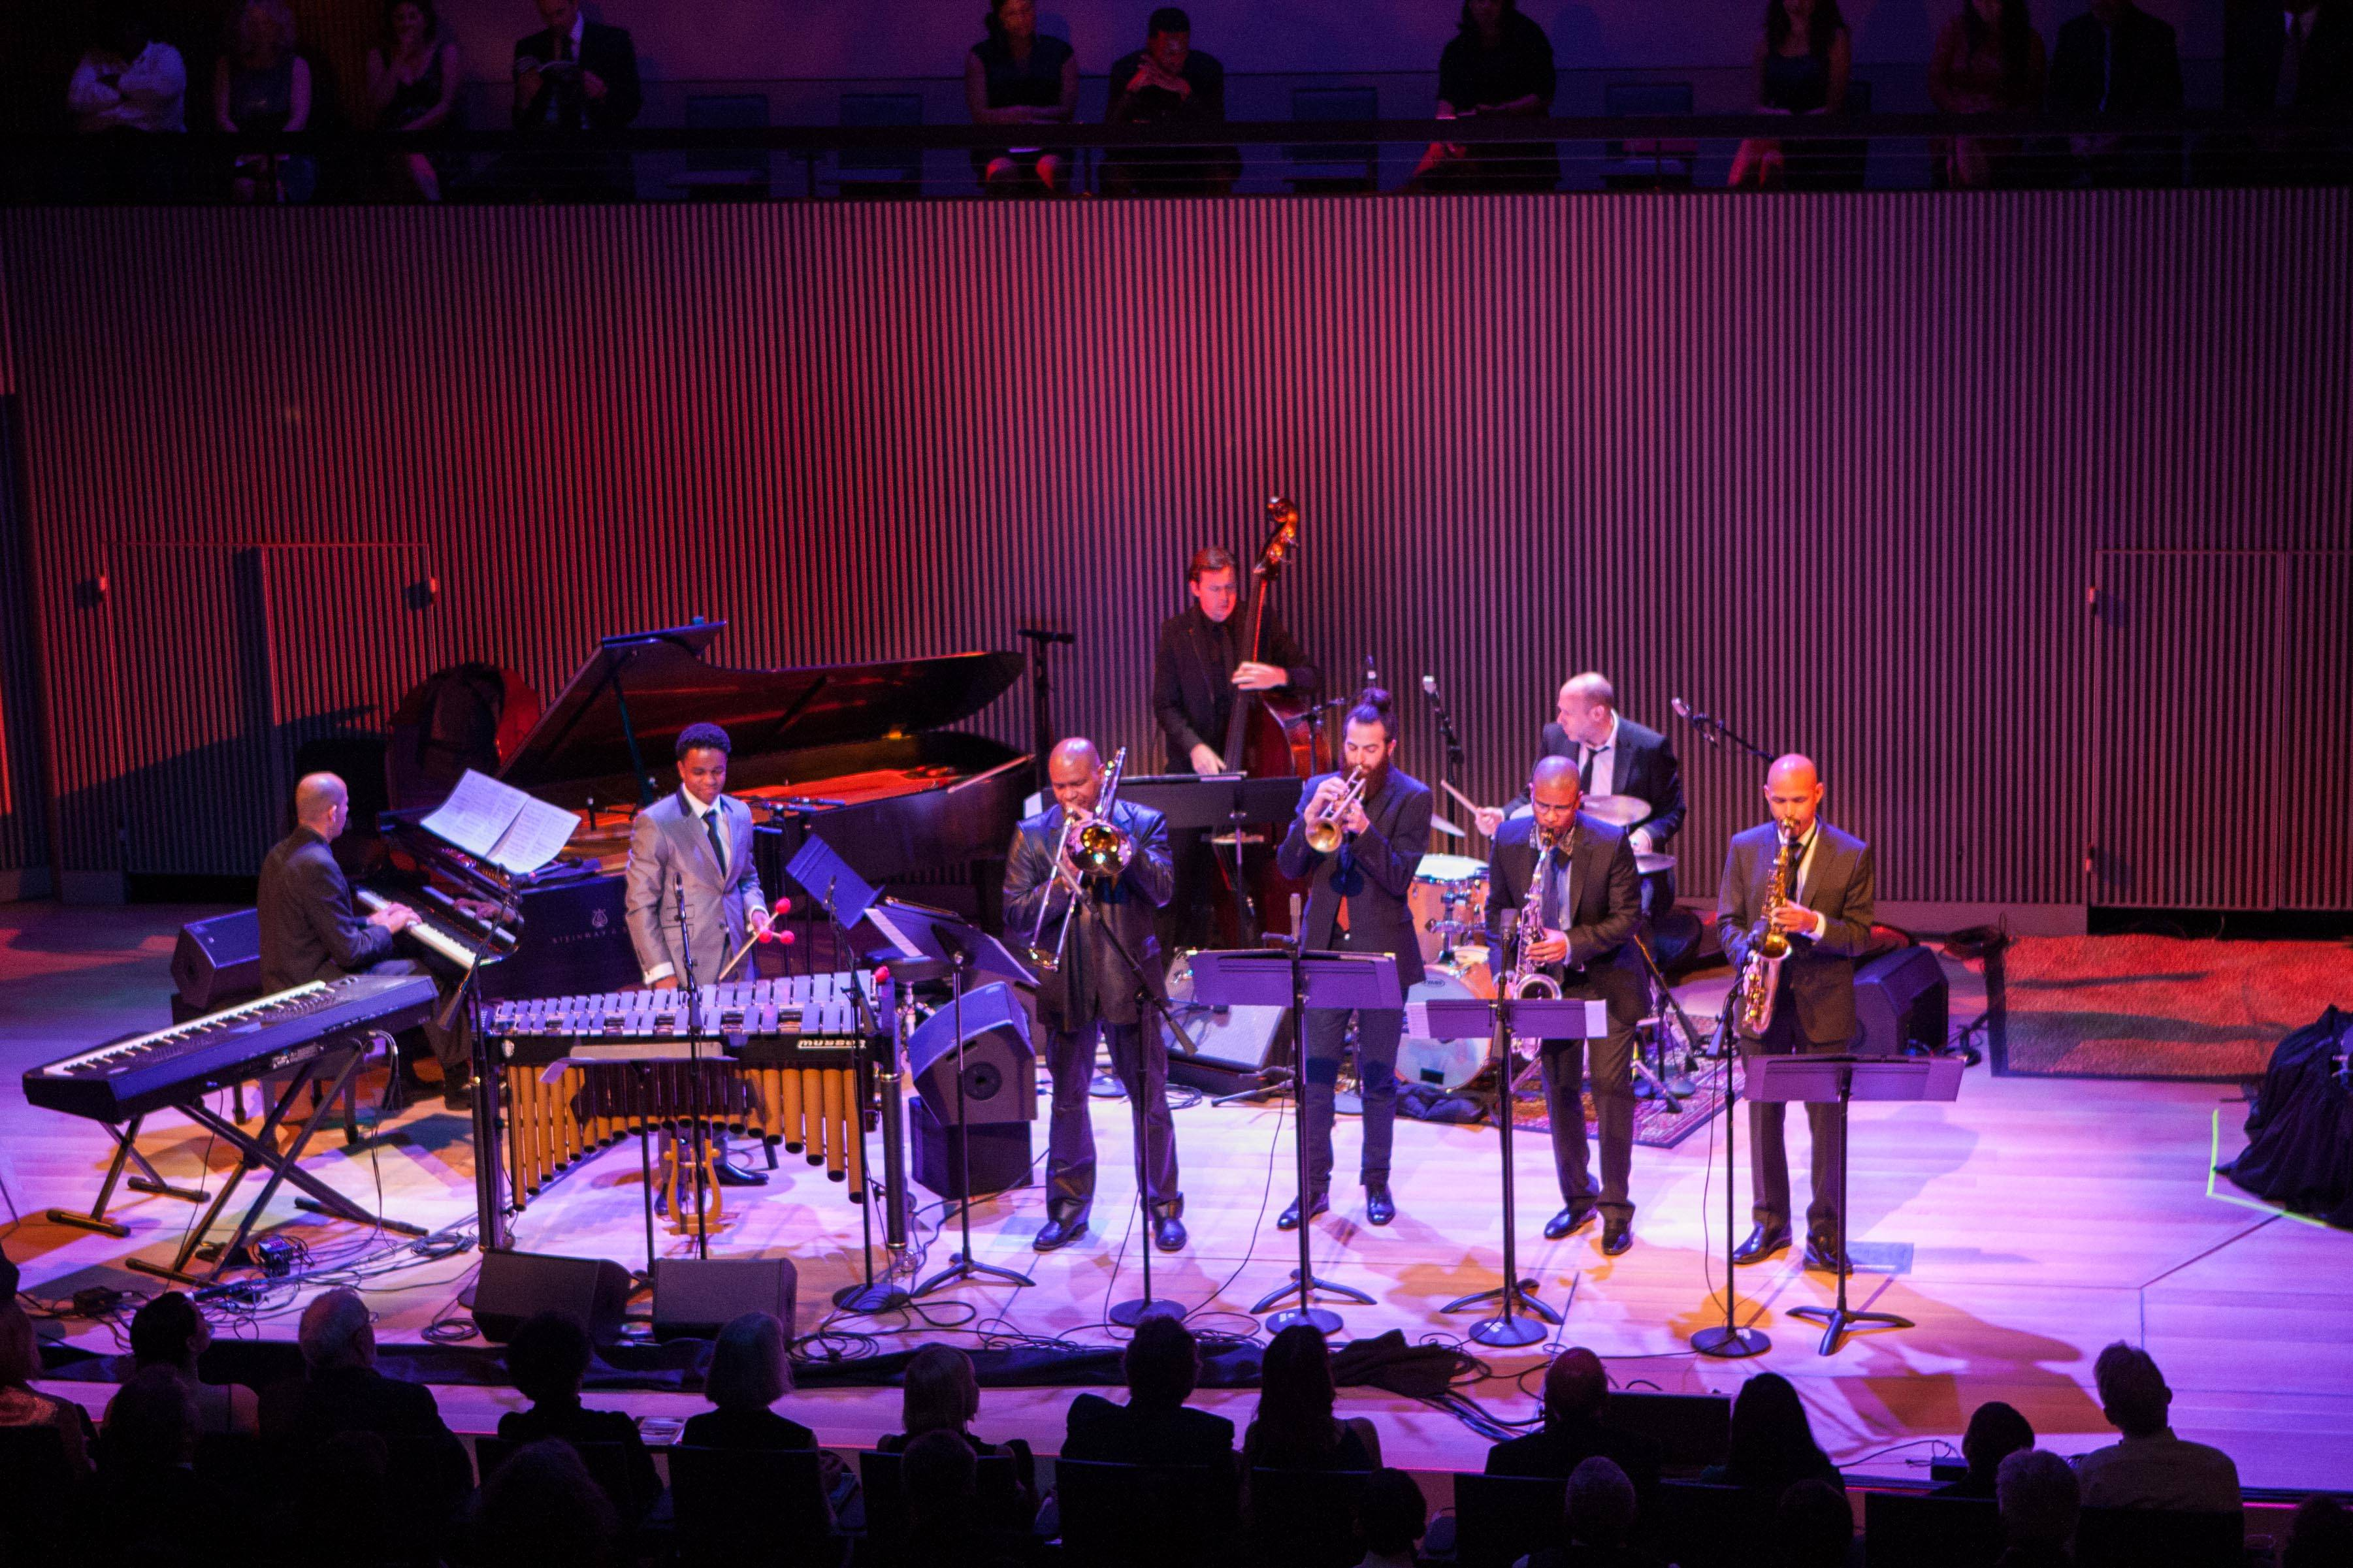 SFJAZZ Historic Opening Night Concert